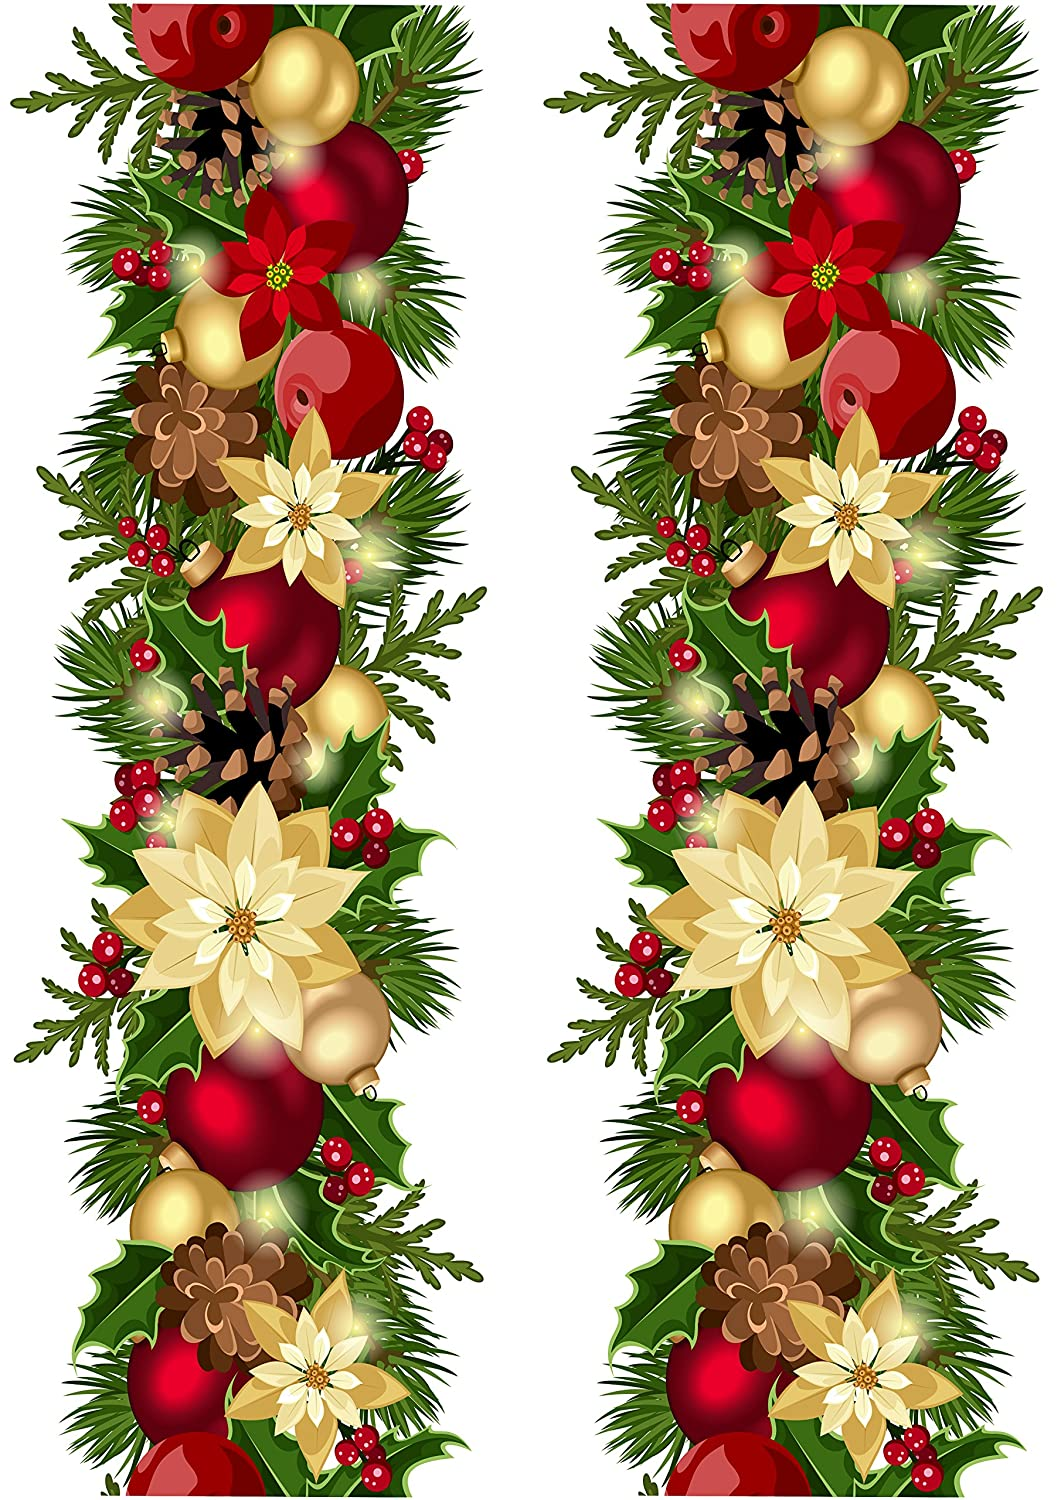 Top That Edible Decor Sheet Christmas Wreath Garland Border Ribbon ,  Perfect for Decorating Your Cakes, Easy to Use